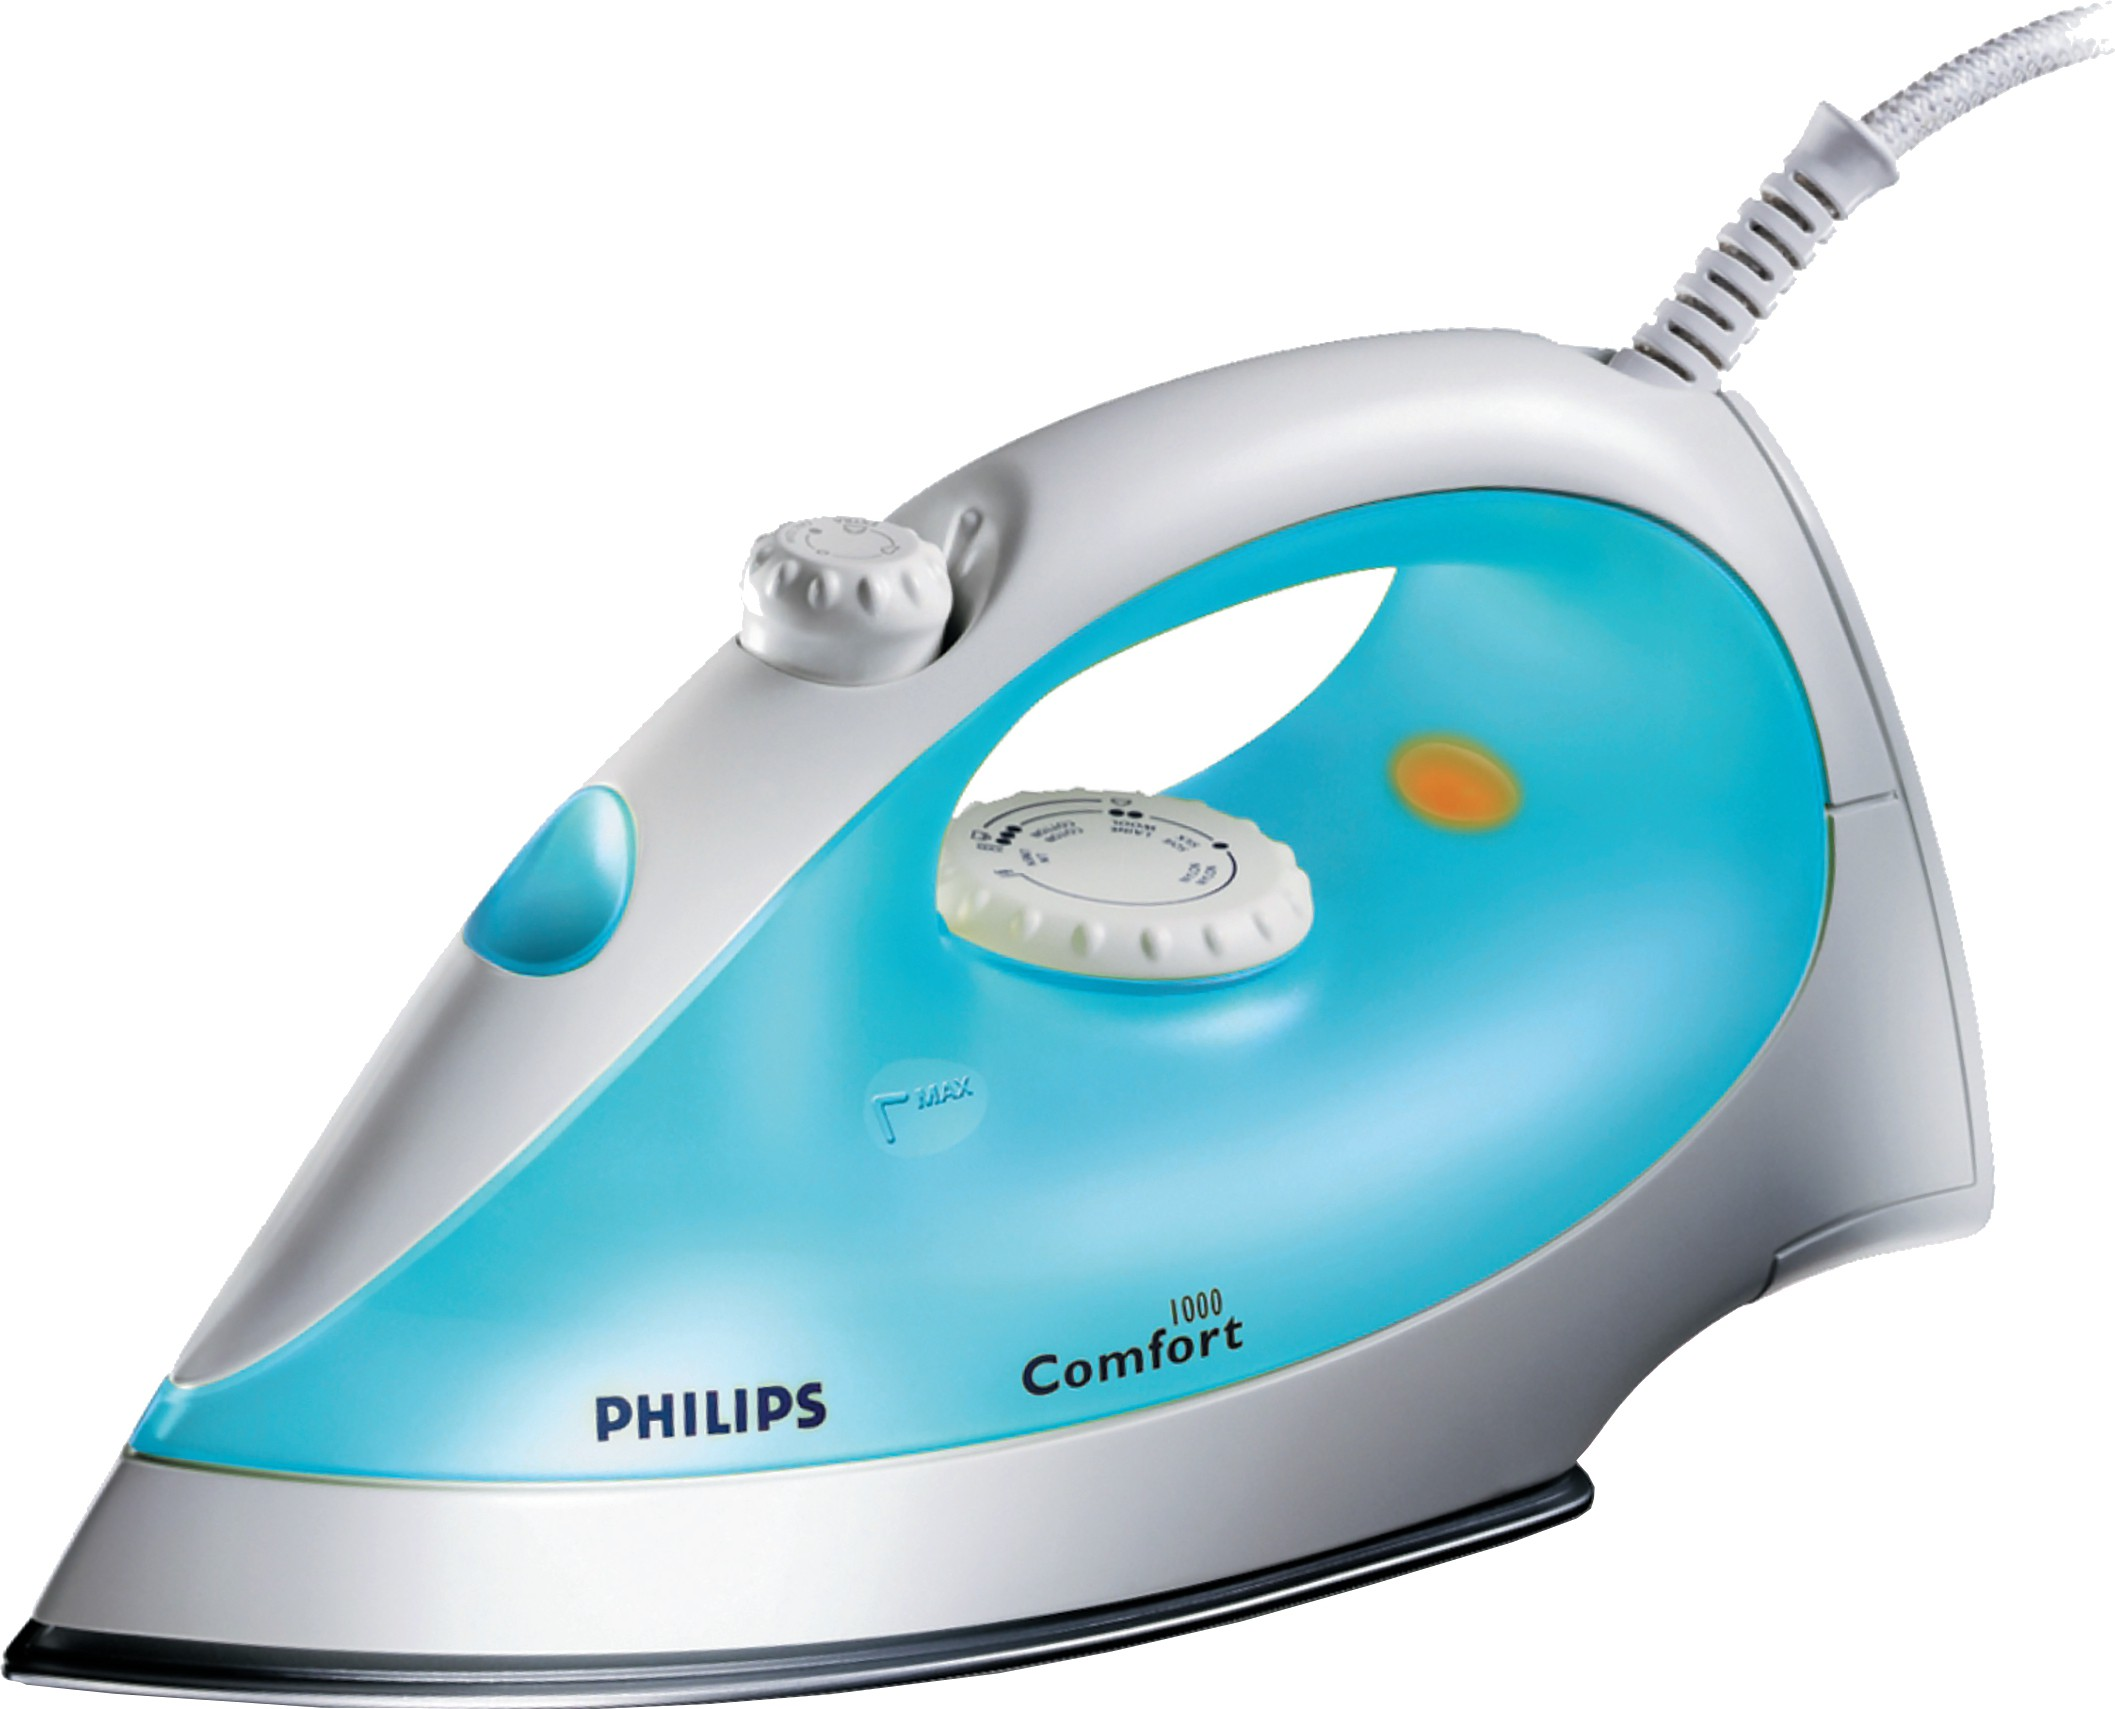 how to clean phillips steam iron